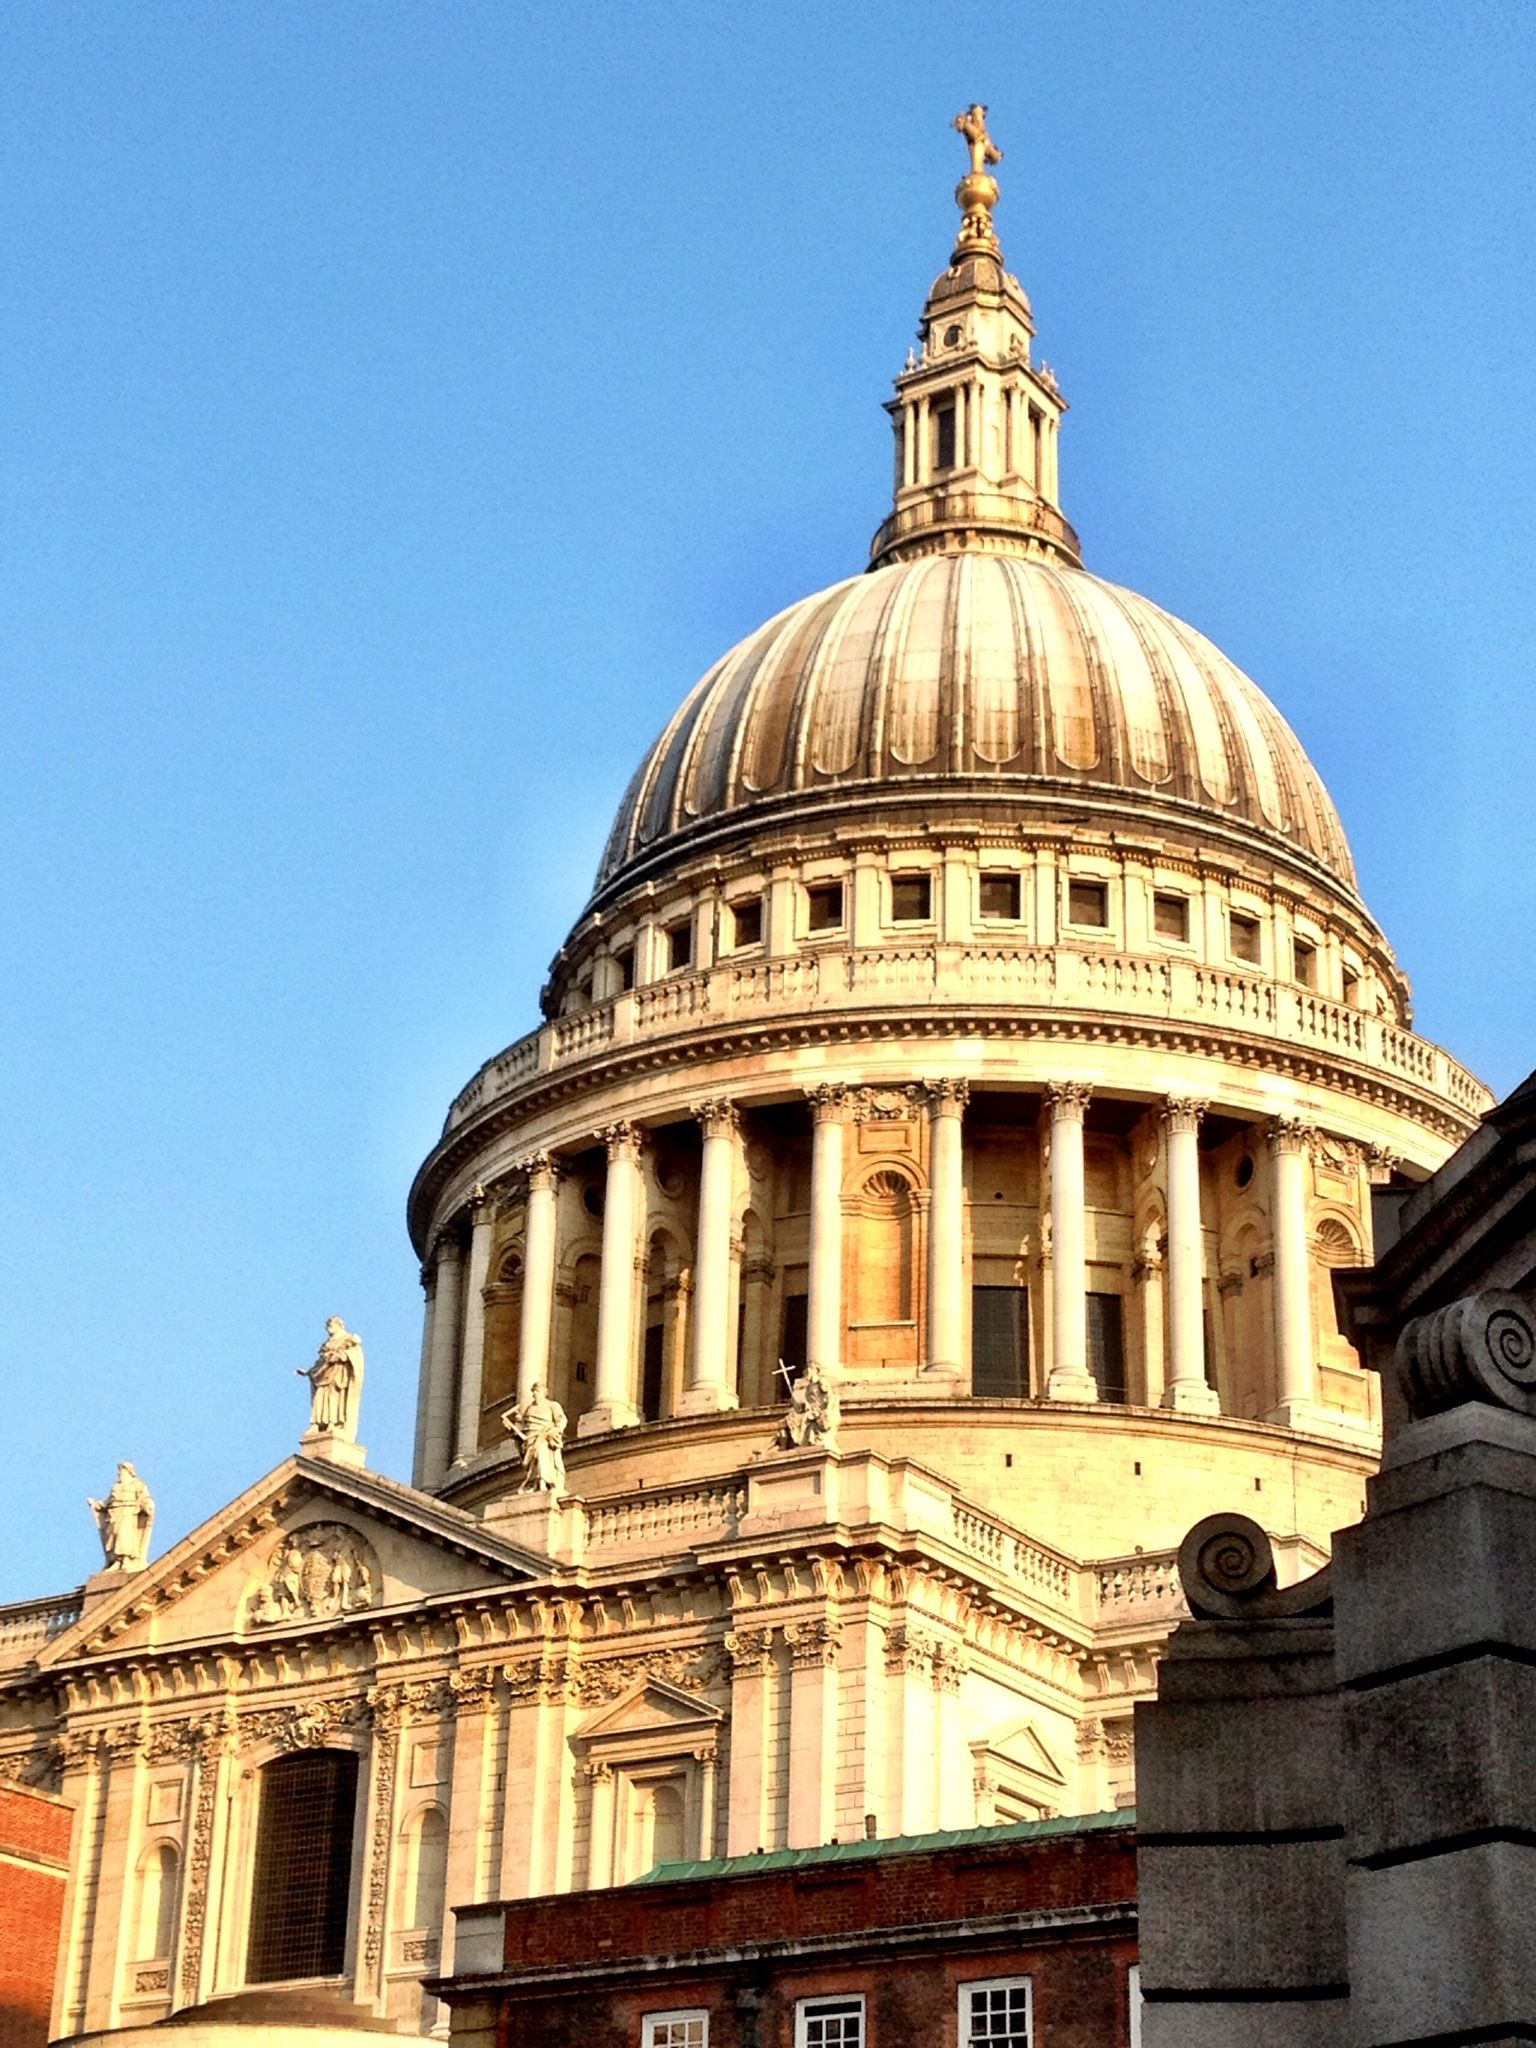 St. Paul's Cathedral, London. Picture taken on IPhone 4s. Adjusted in Camera+